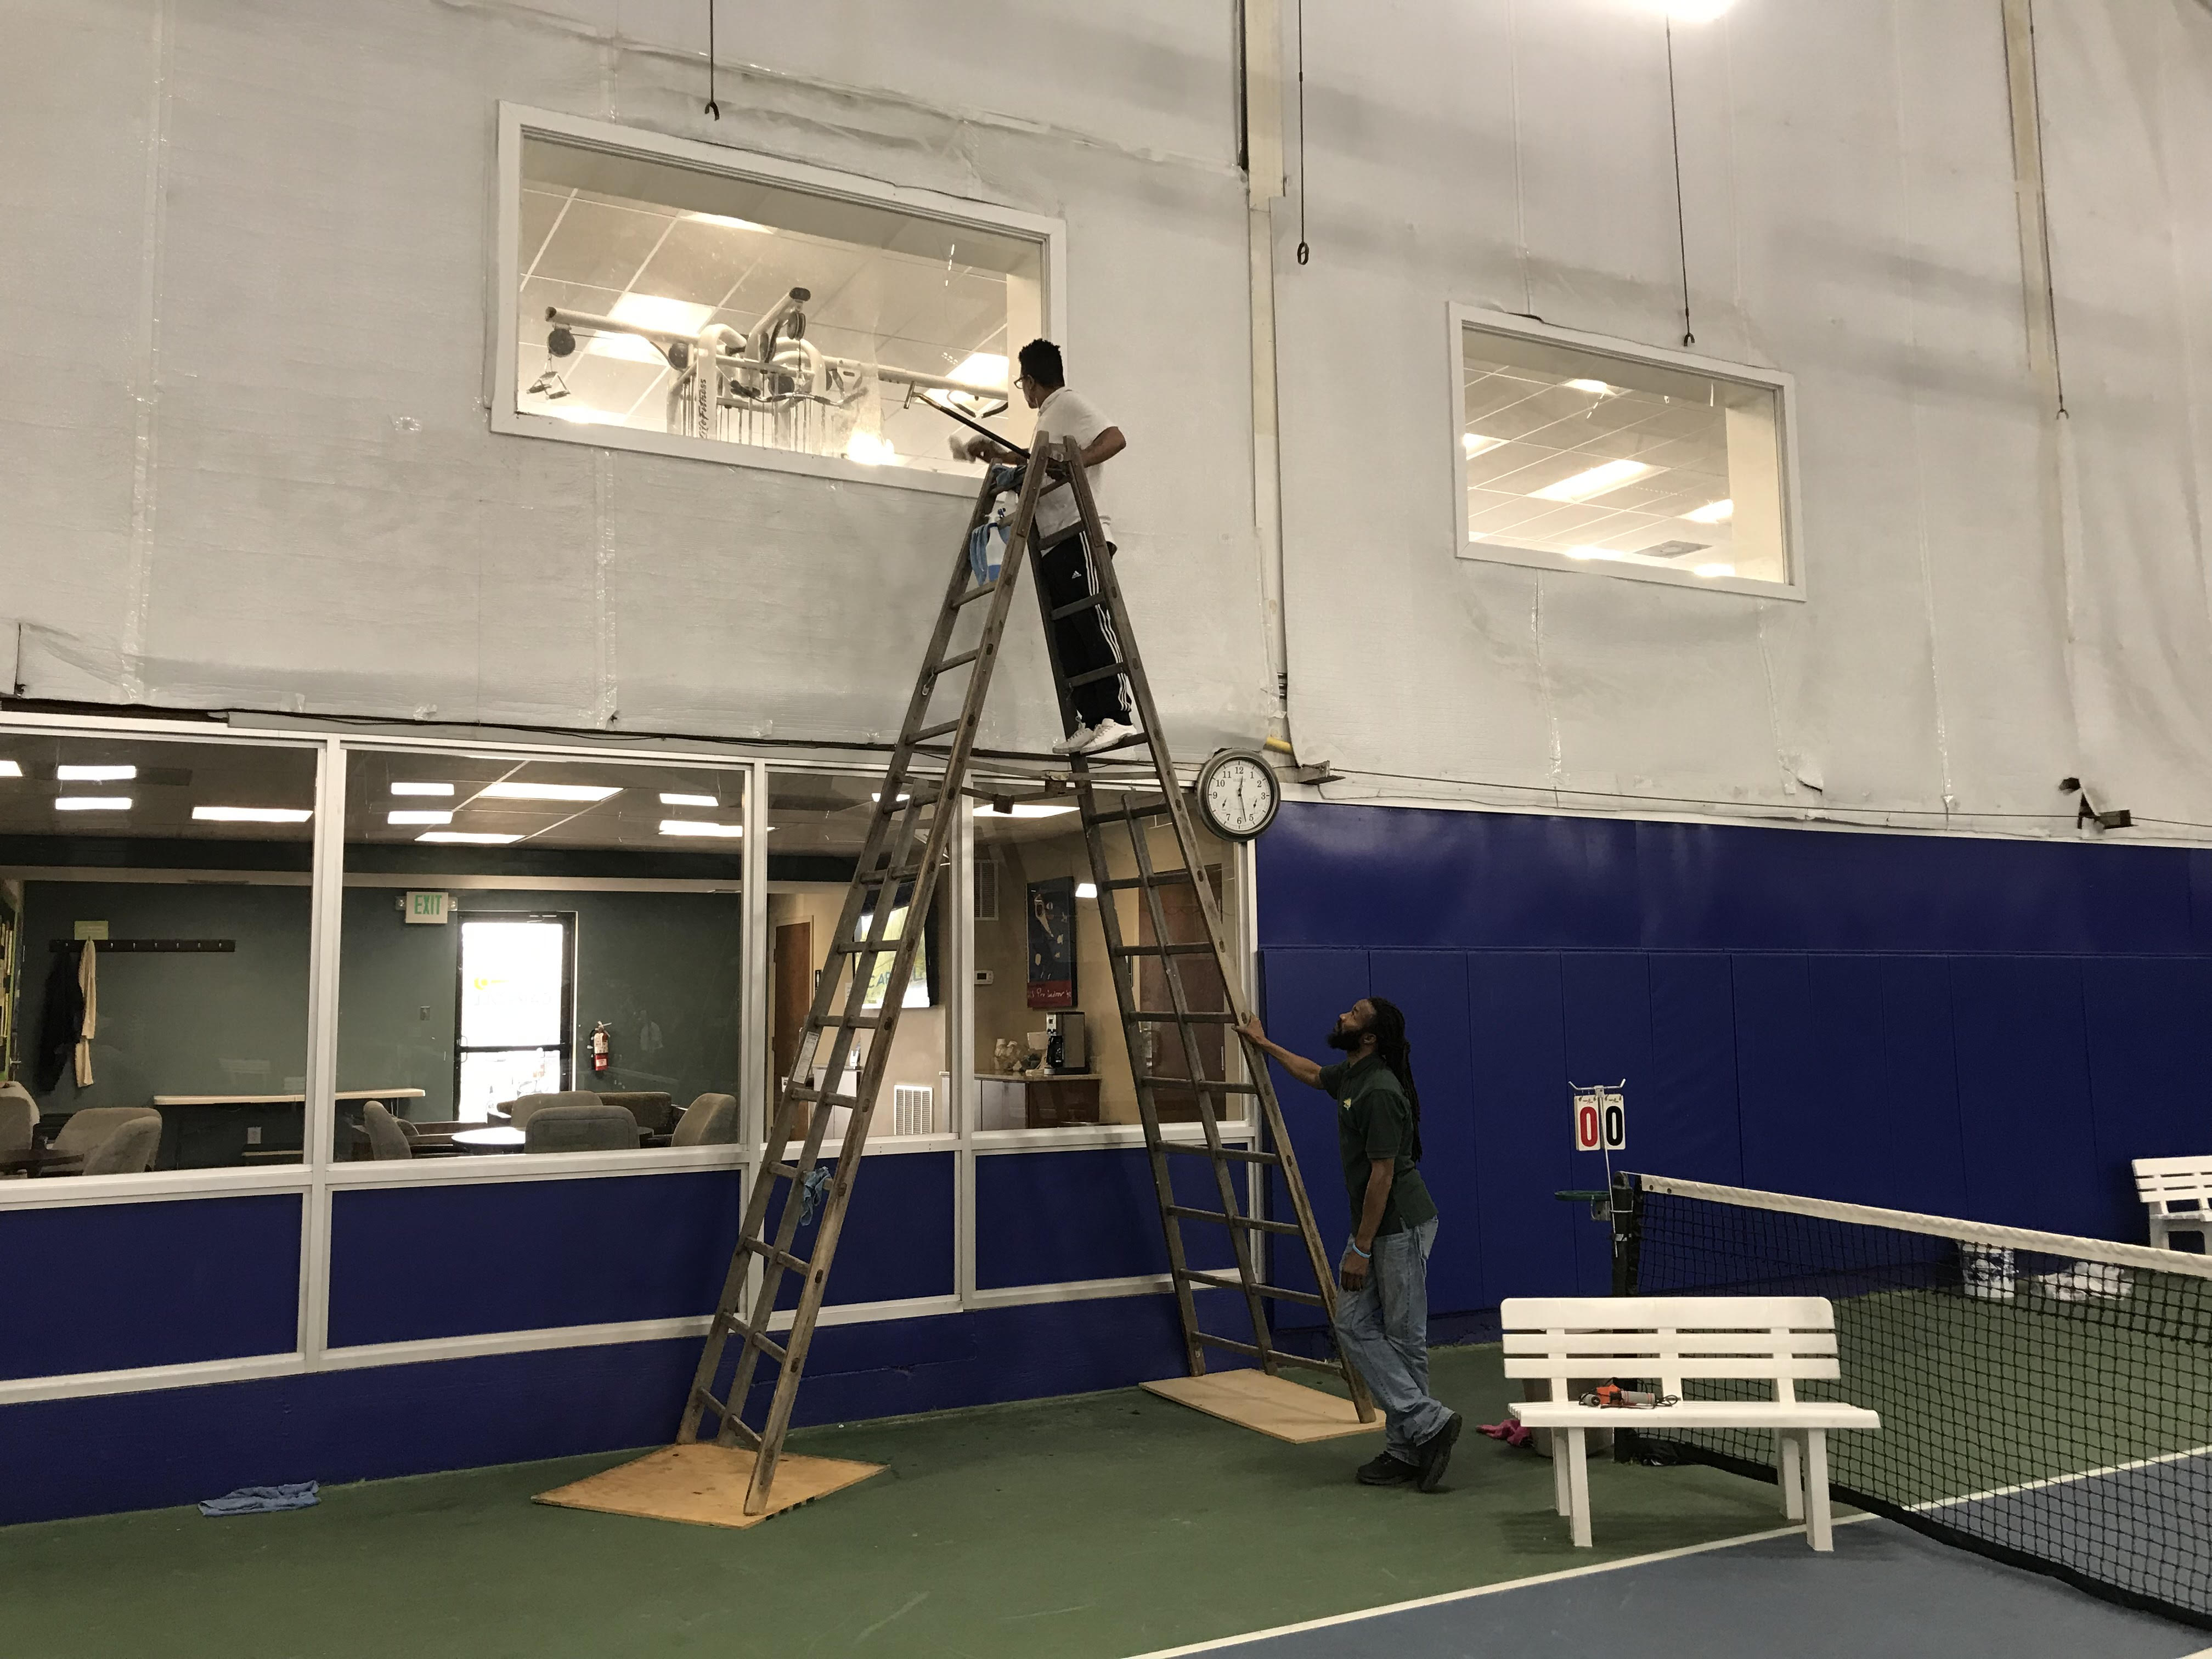 Carroll Tennis Center has their Windows and Carpet Cleaned by Summit